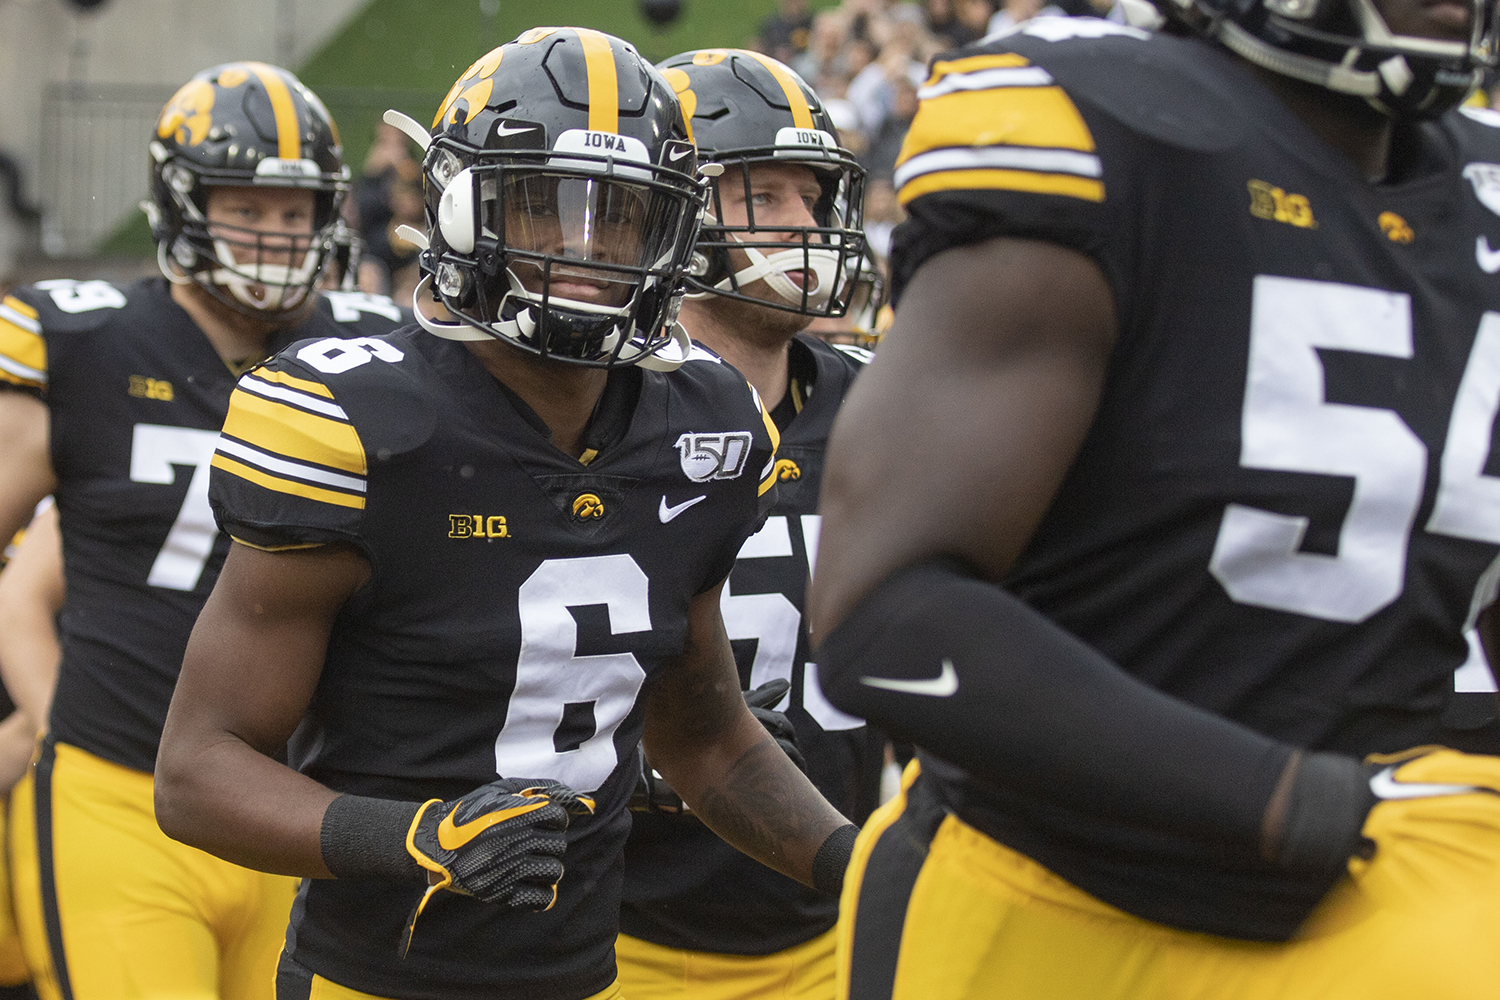 Iowa players run onto the field before the Iowa football game against Purdue at Kinnick Stadium on Saturday, Oct. 19, 2019. The Hawkeyes defeated the Boilermakers 26-20.